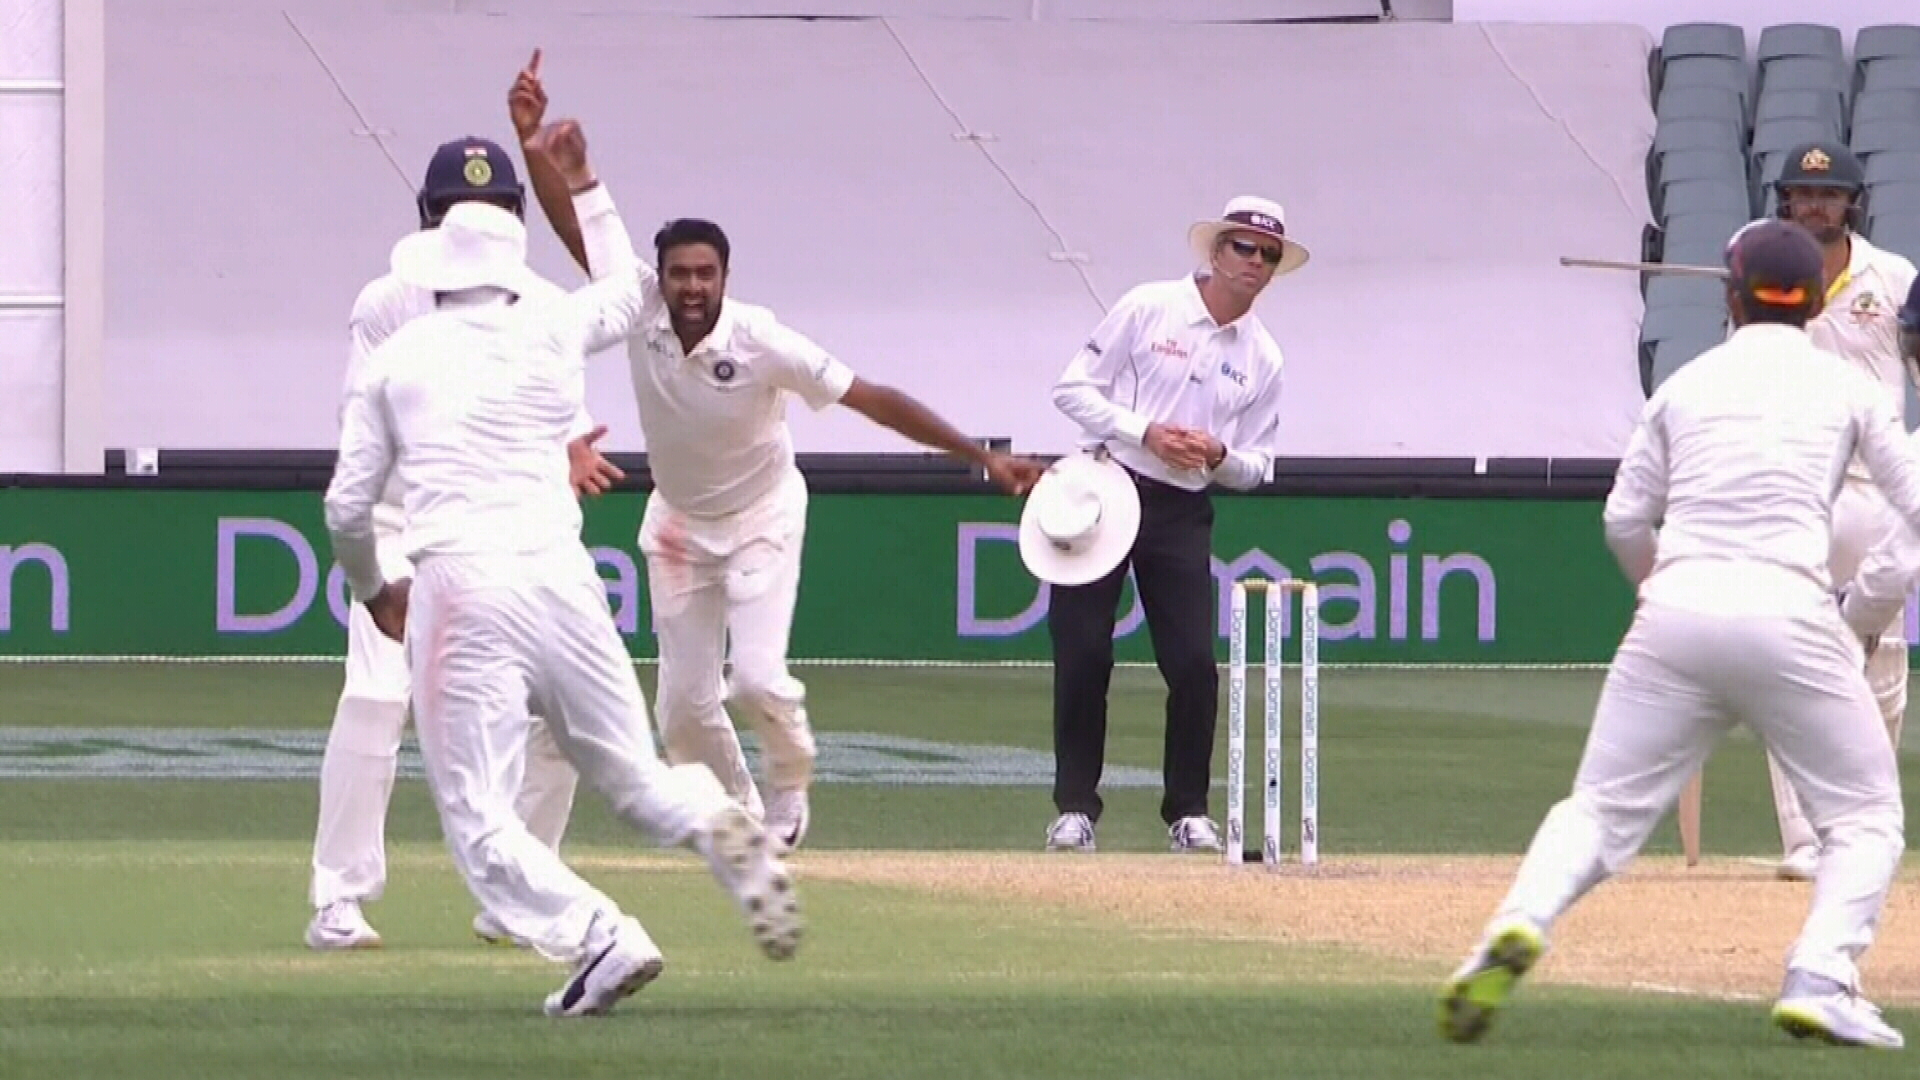 India claim the Adelaide Test